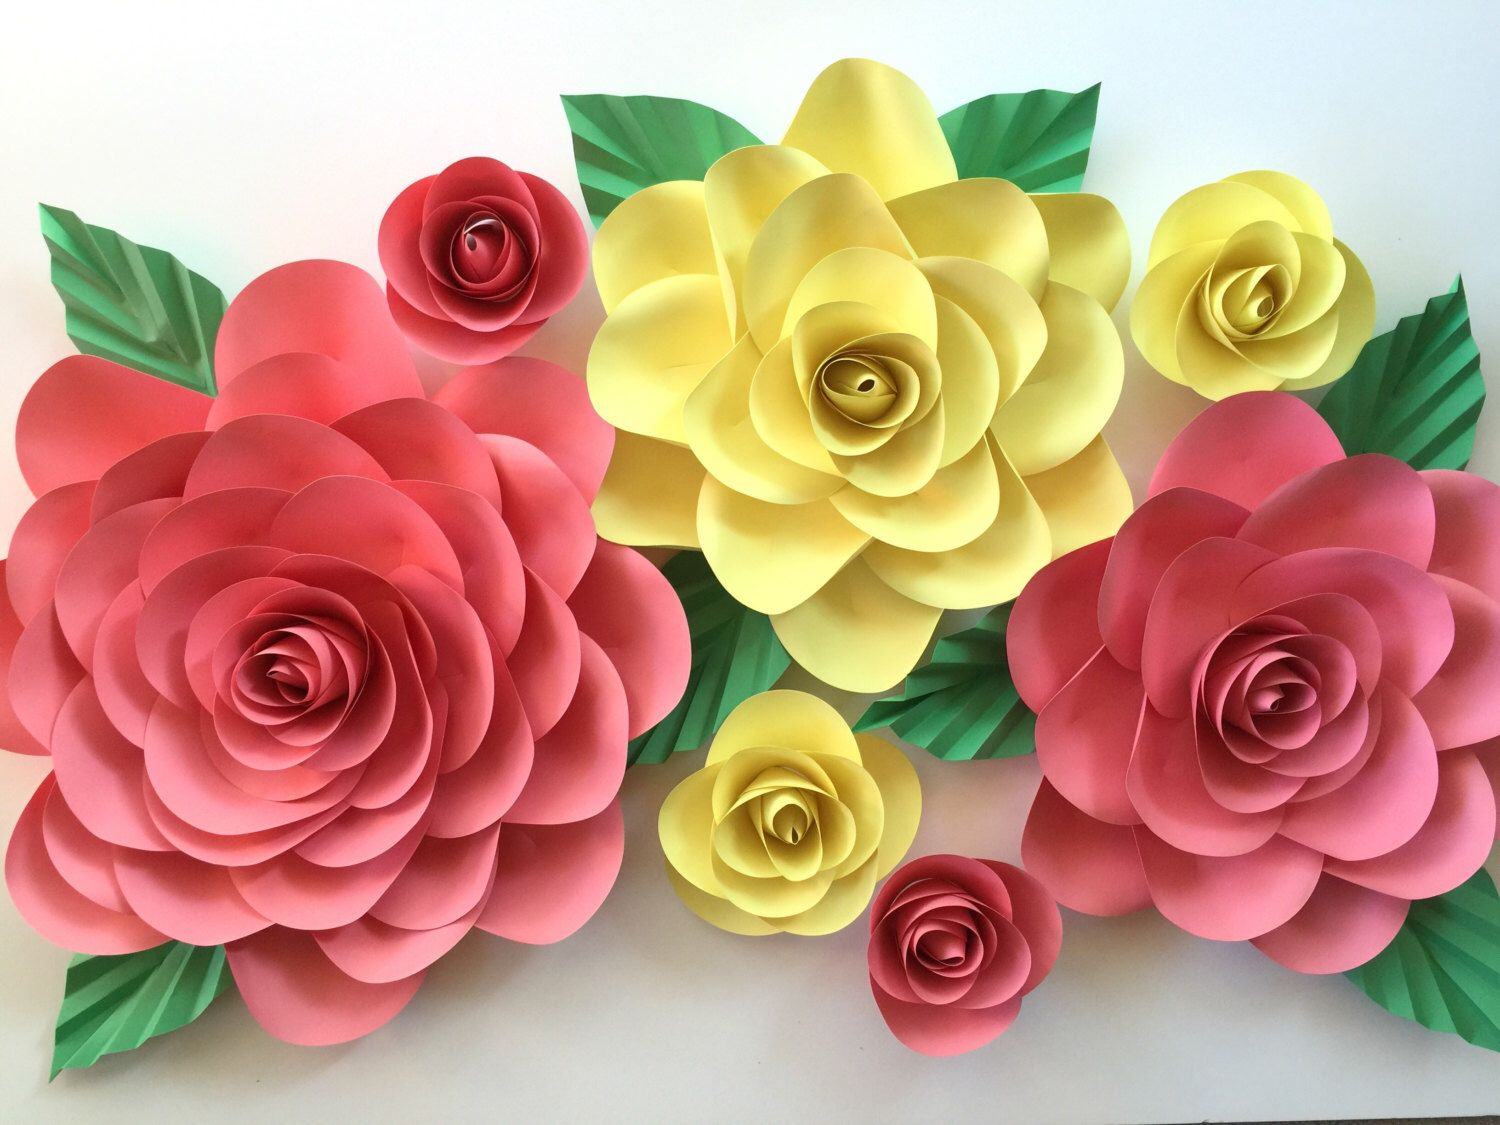 etsy paper flower backdrop - Kubre.euforic.co